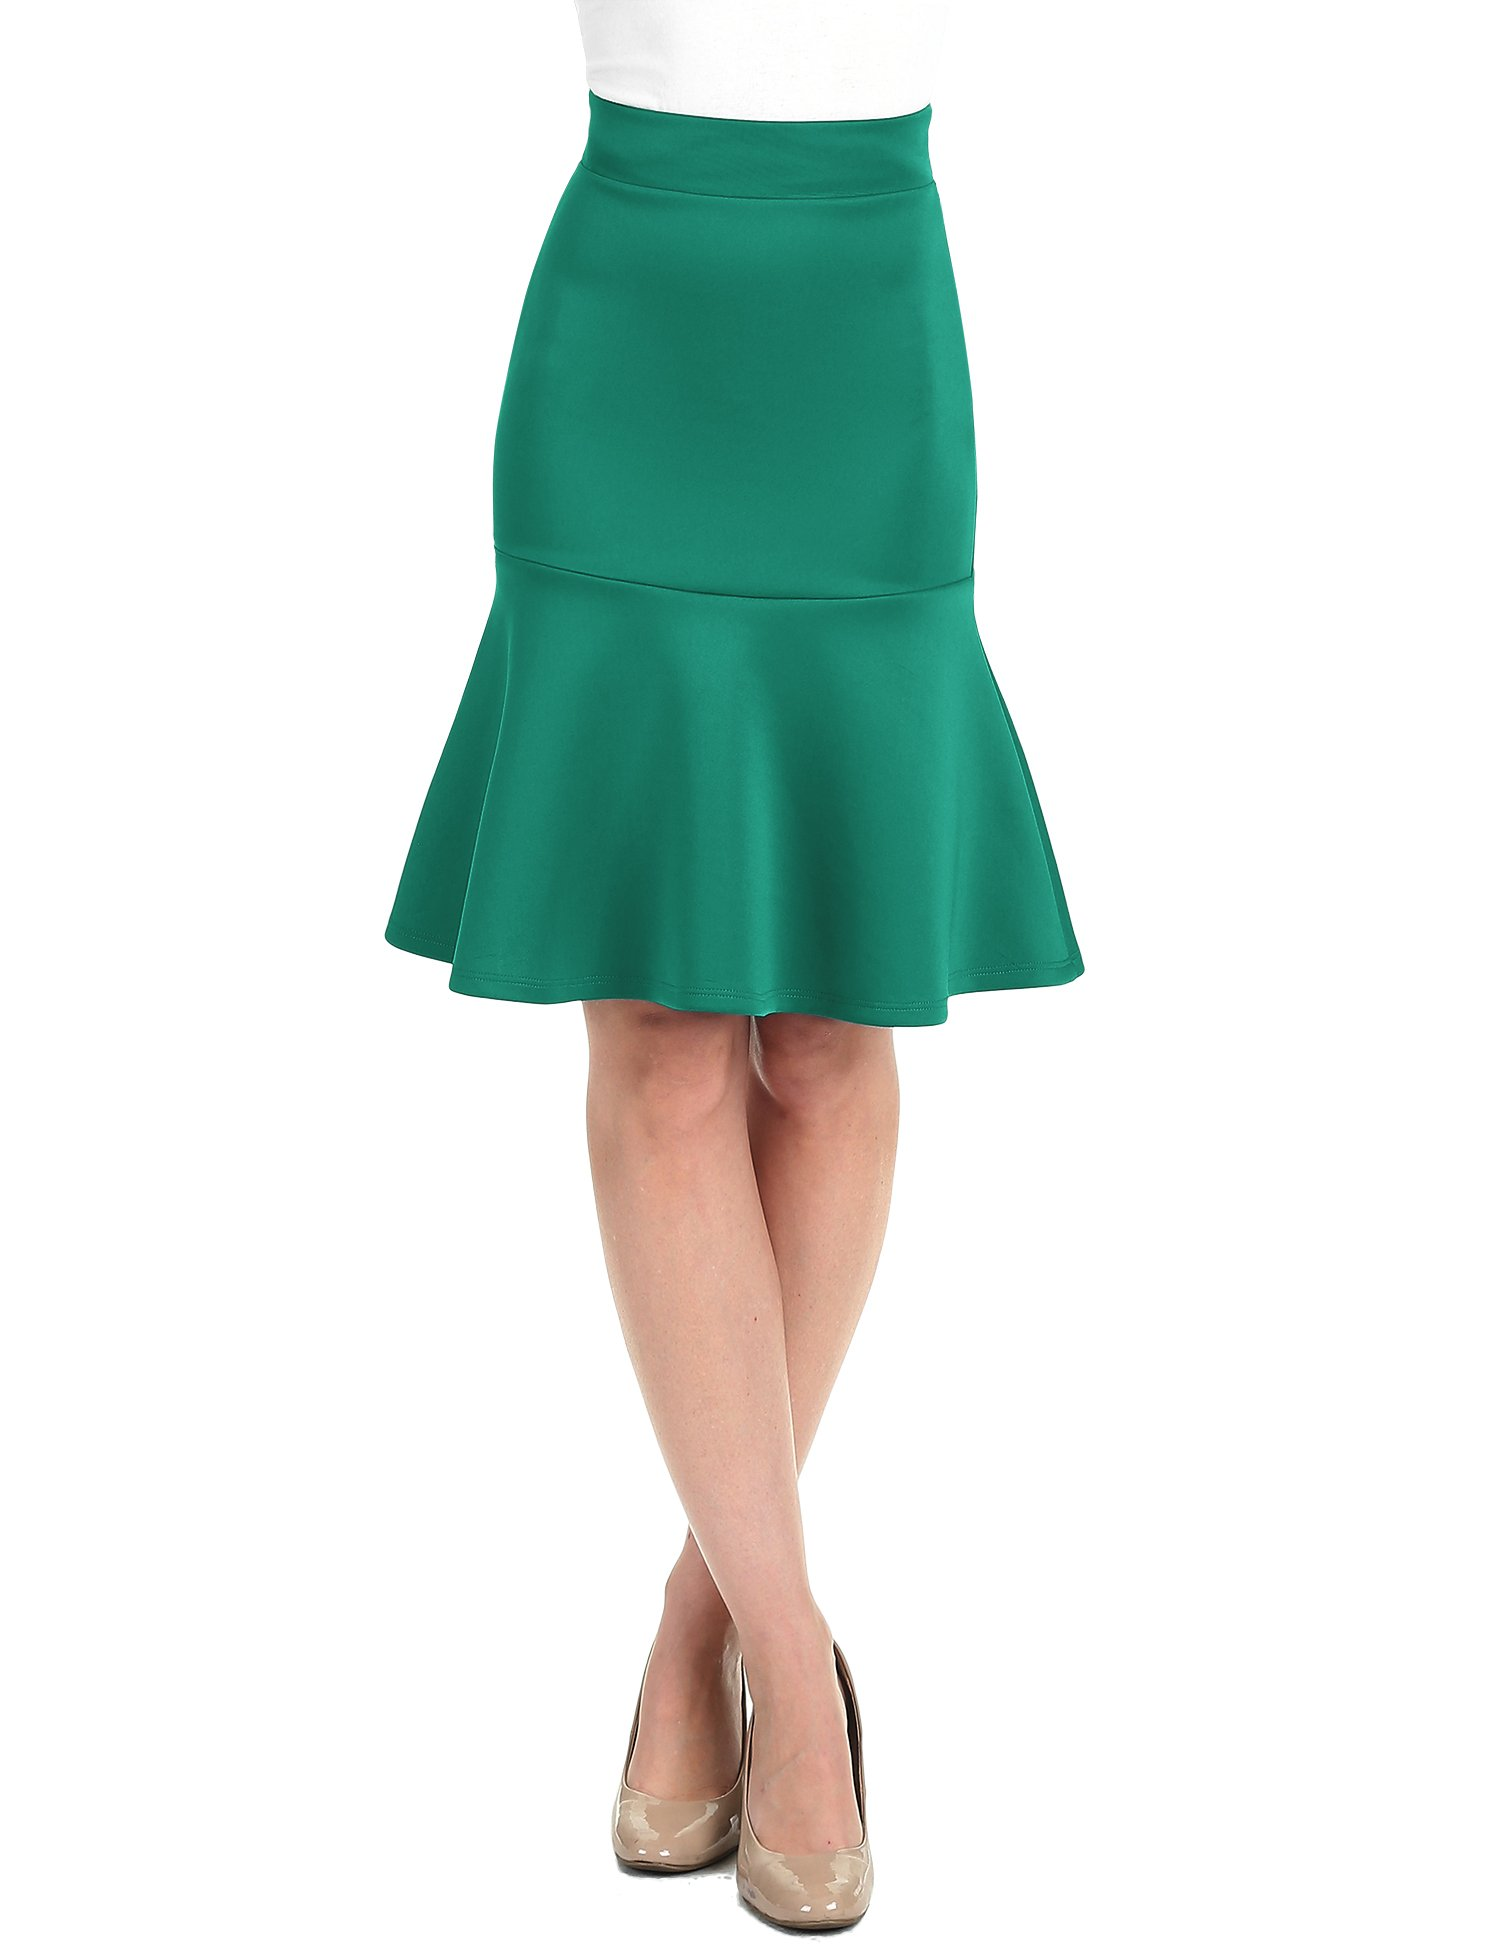 WT1471 Womens High Waist Bodycon Fishtail Midi Skirt S Jade